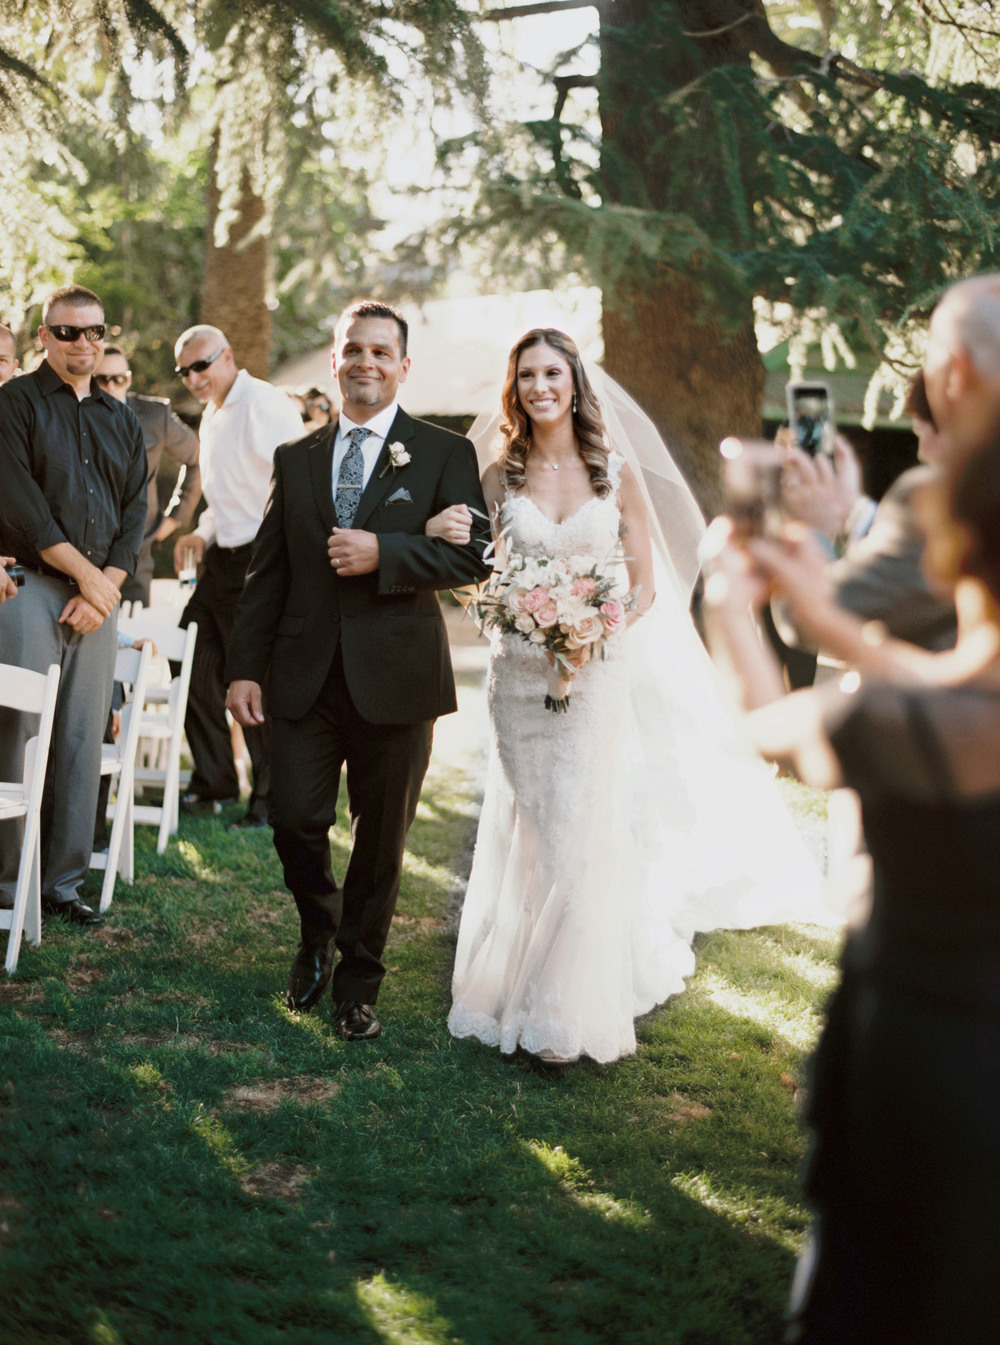 070johnna&jake+wine&roses+california+fineart+film+images+wedding+photography+videography.jpg